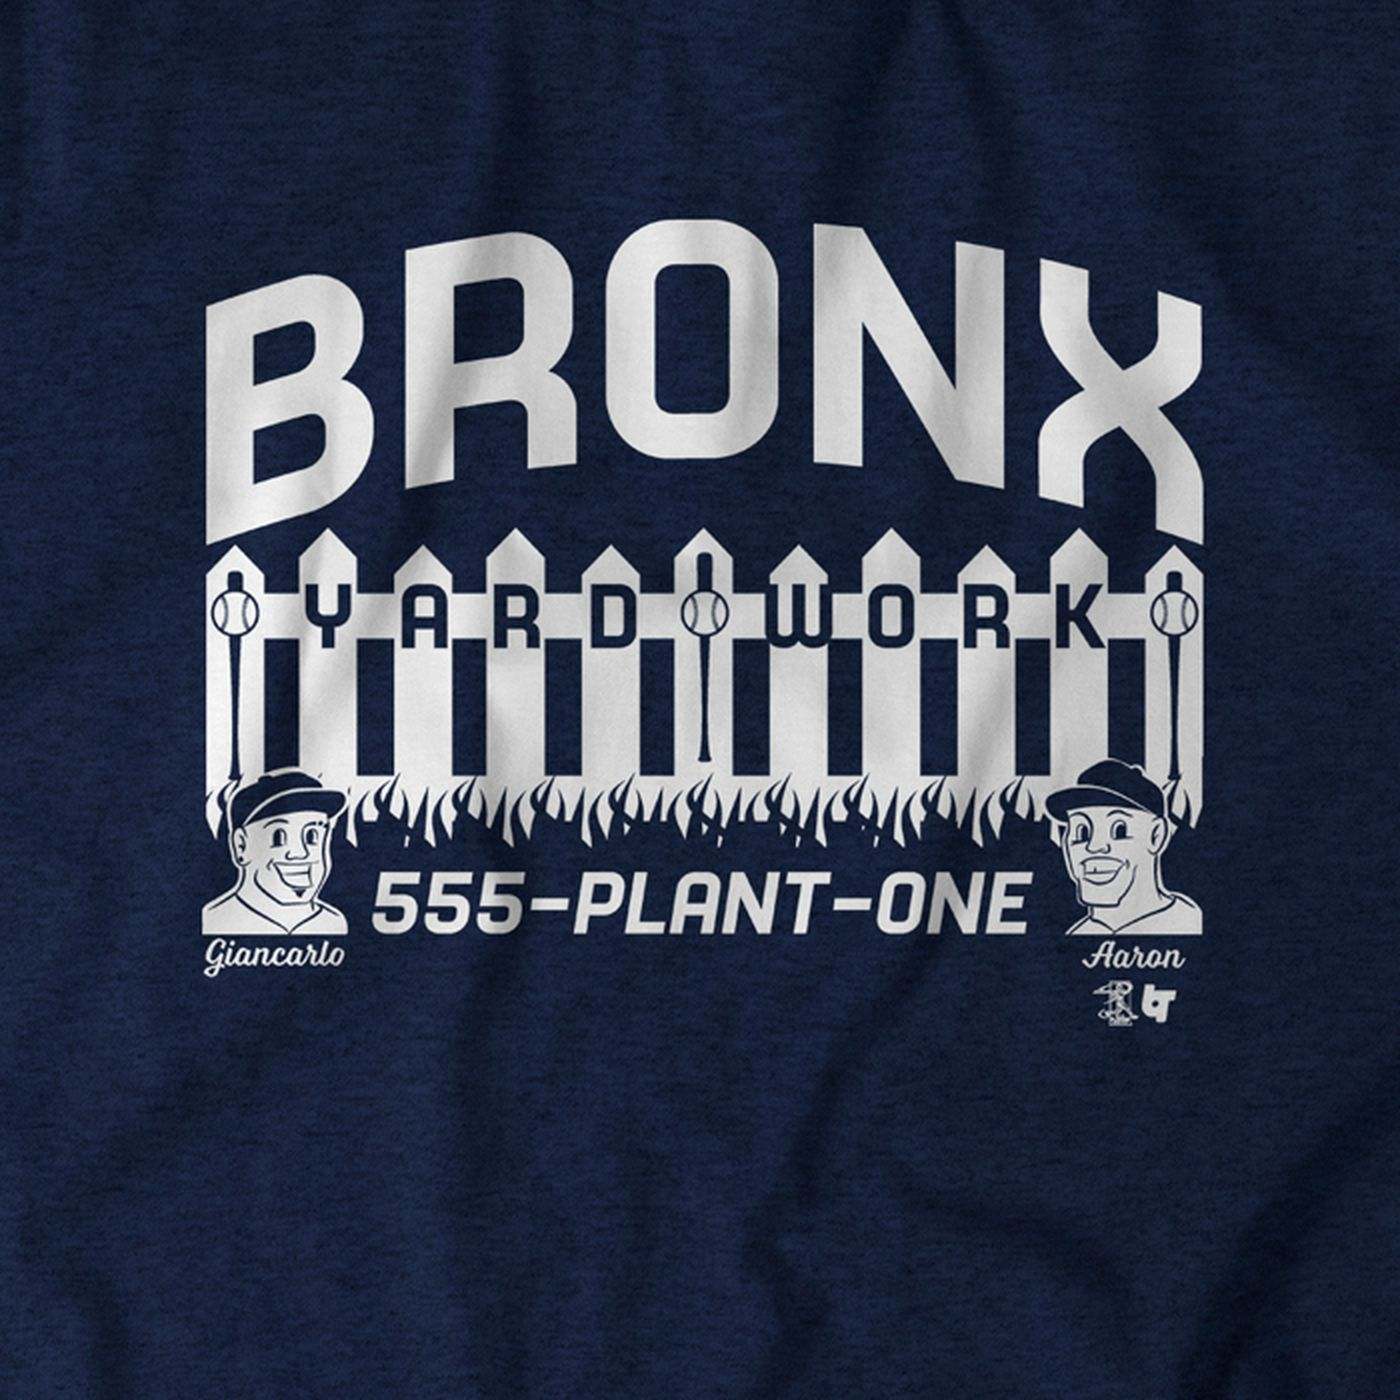 871d1e09 Celebrate Yankees Opening Day with this Bronx Yard Work t-shirt. New ...